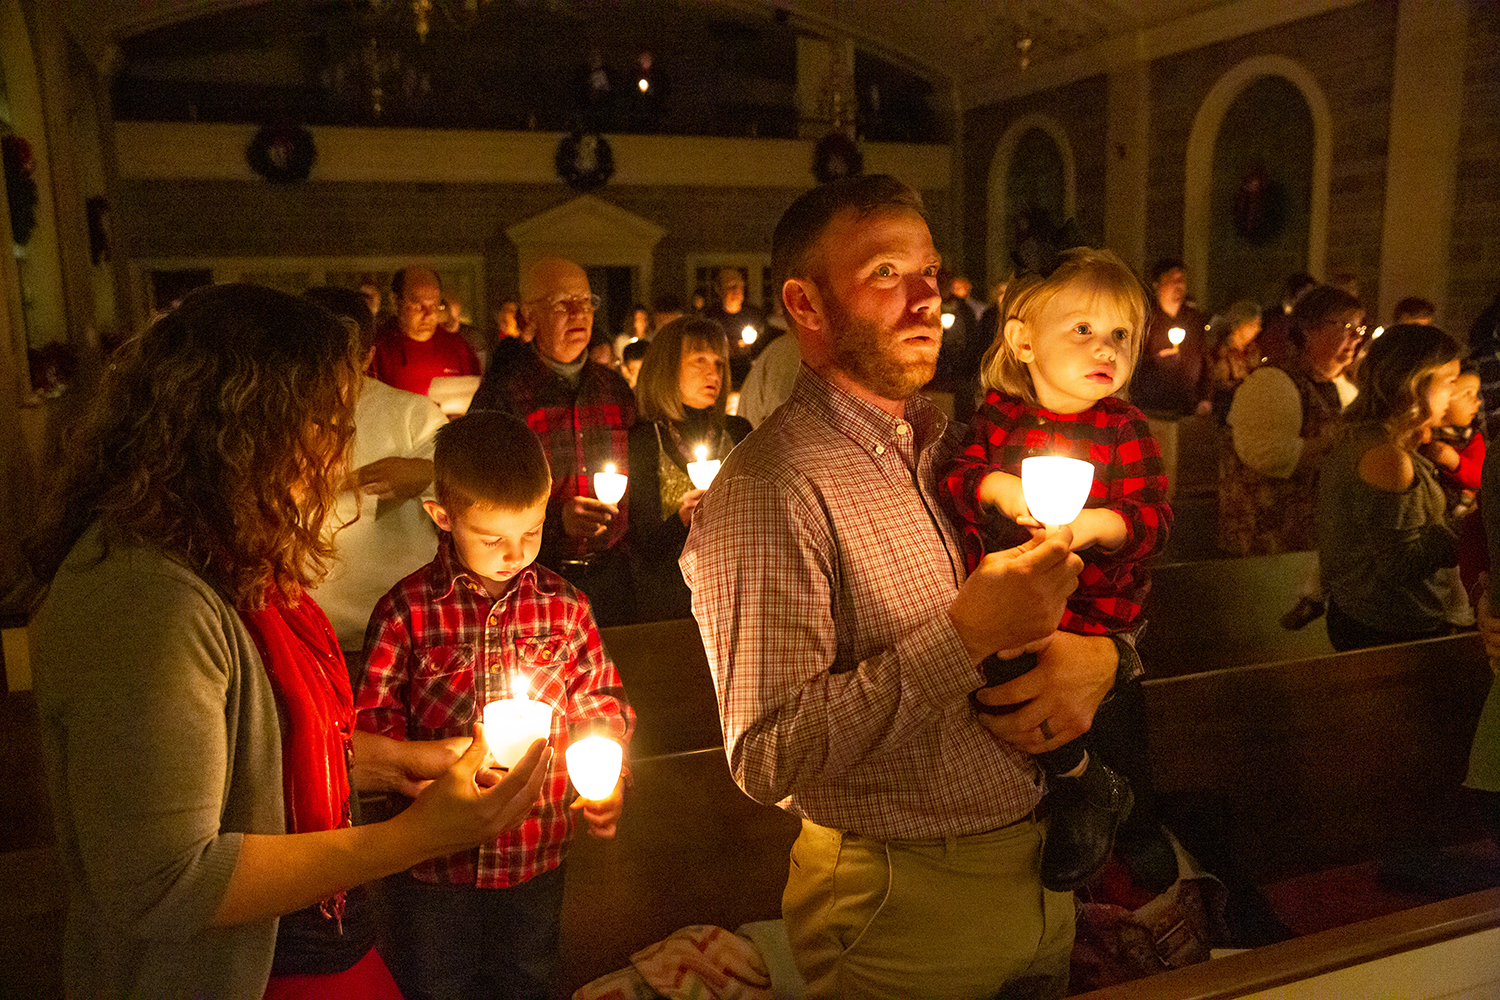 Michelle and Lee Curby and their son, Carter, 4, and daughter Claire, 1, join the congregation in singing Silent Night during the Christmas Eve candlelight service at First Congregational Church Monday, Dec. 24, 2018 in Springfield, Ill. Christians around the world celebrate the birth of Jesus on Christmas. [Rich Saal/The State Journal-Register]